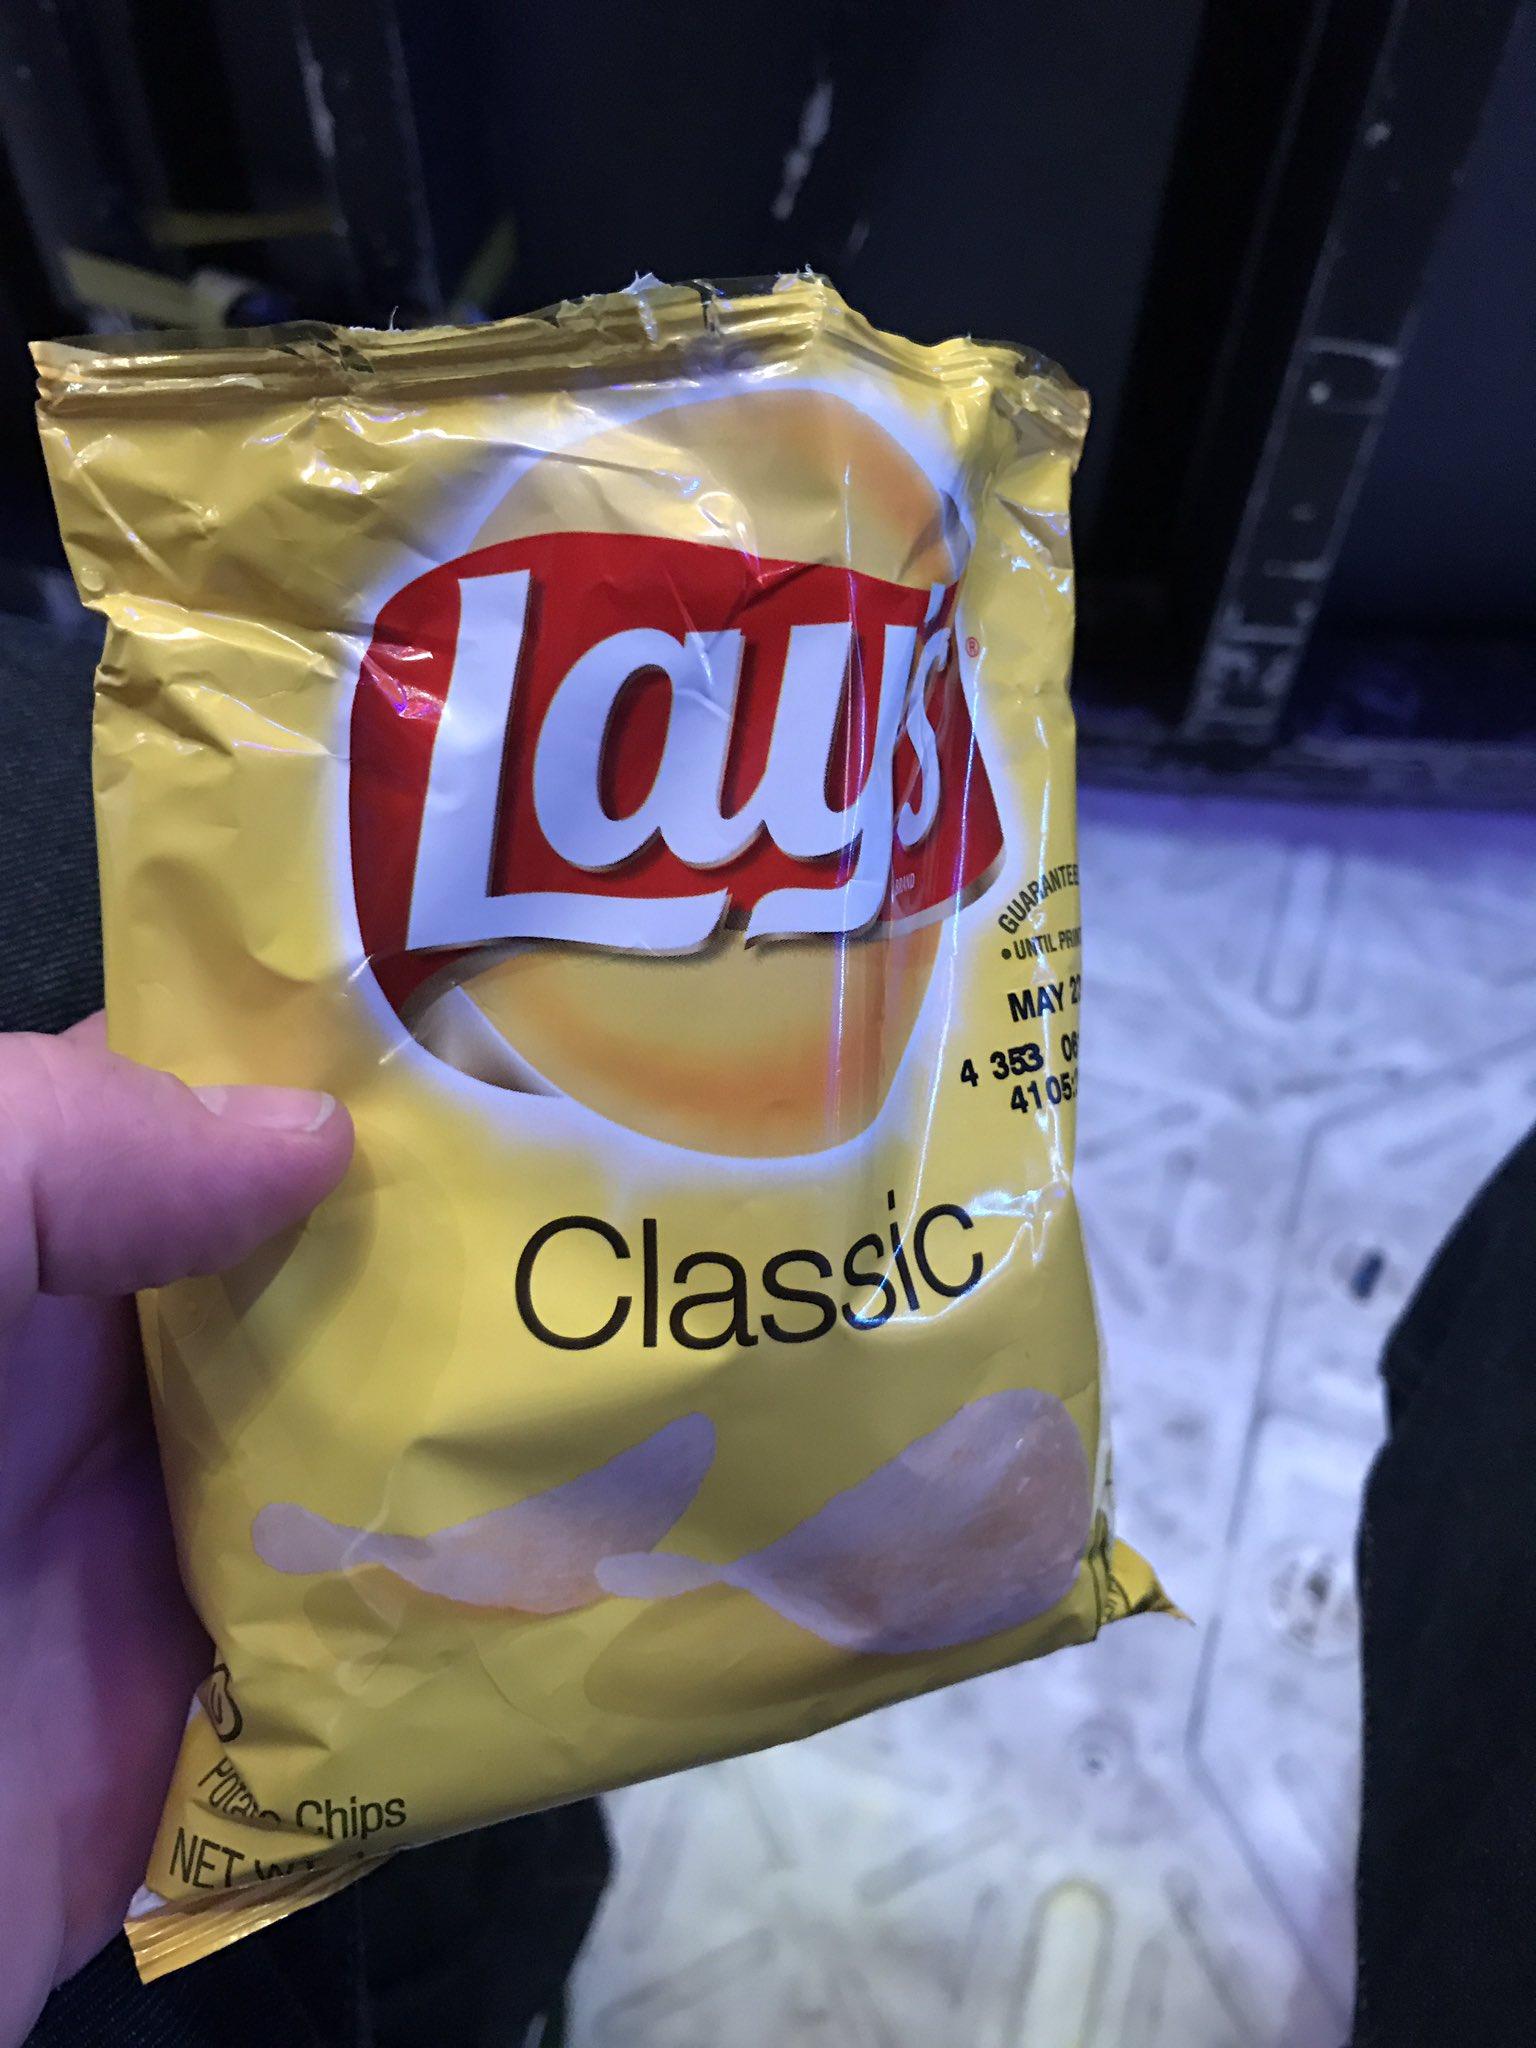 @IISuperwomanII thanks for the @LAYS. #FallonRide #FallonOrlando https://t.co/6wYB51fmQh